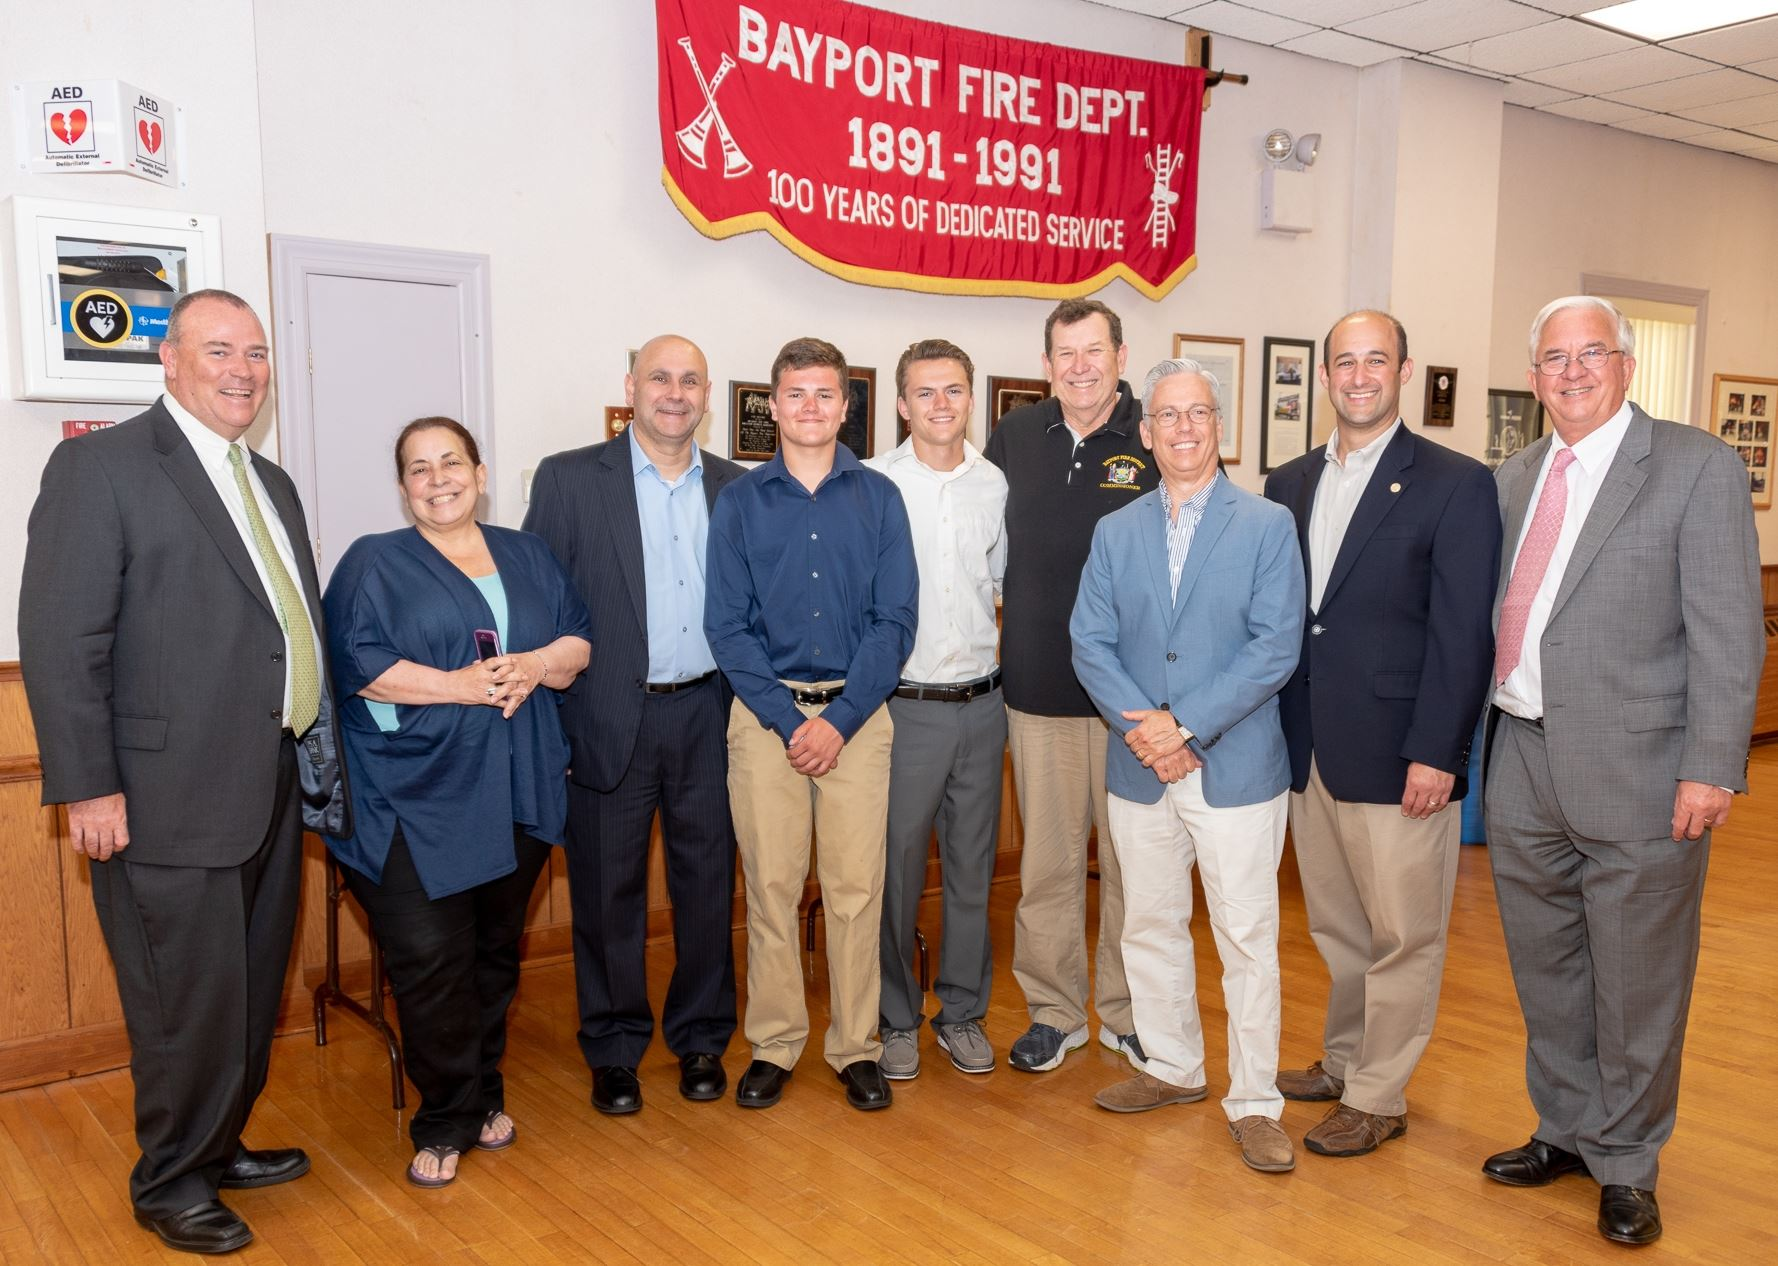 Bayport Fire Department Honorees